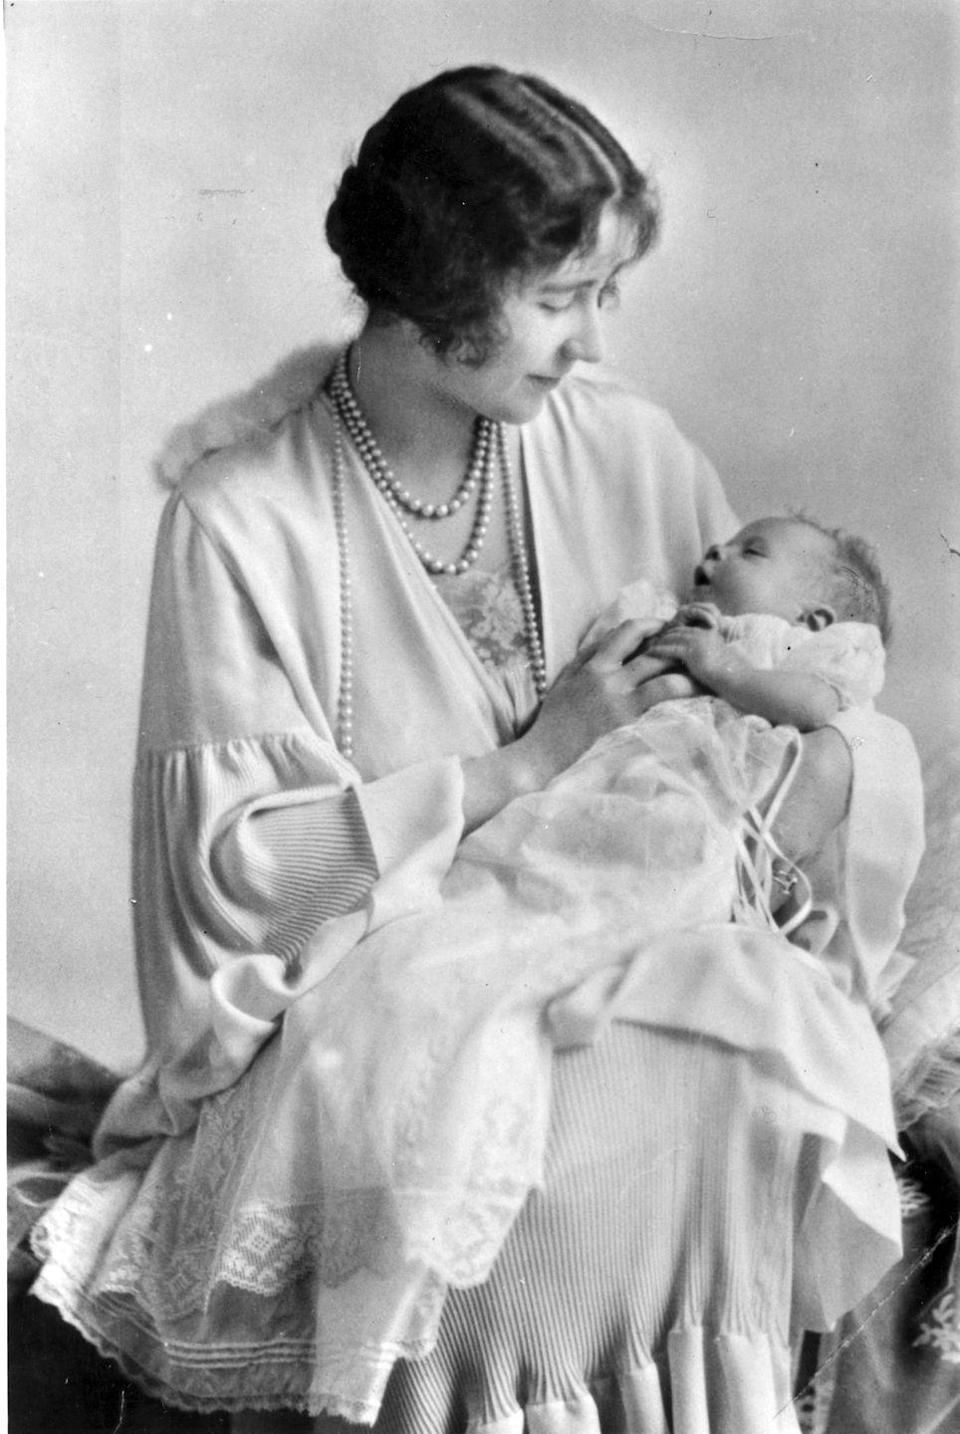 """<p>The future queen was <a href=""""http://royalcentral.co.uk/blogs/the-queens-london-birthplace-17-bruton-st-59298"""" rel=""""nofollow noopener"""" target=""""_blank"""" data-ylk=""""slk:born at 2:40 a.m."""" class=""""link rapid-noclick-resp"""">born at 2:40 a.m.</a> on April 21, 1926, at <a href=""""https://www.royalcollection.org.uk/collection/2002127/no-17-bruton-street-london-w1-the-birthplace-of-hm-queen-elizabeth-ii"""" rel=""""nofollow noopener"""" target=""""_blank"""" data-ylk=""""slk:17 Bruton Street in Mayfair"""" class=""""link rapid-noclick-resp"""">17 Bruton Street in Mayfair</a>, the London home of her maternal grandparents, the Earl and Countess of Strathmore. </p><p><em>Left</em>: Elizabeth, Duchess of York (1900-2002) holds her baby, the future Queen Elizabeth II, in May 1926.</p><p><strong>More</strong>: <a href=""""https://www.townandcountrymag.com/society/g9234793/queen-elizabeth-facts/"""" rel=""""nofollow noopener"""" target=""""_blank"""" data-ylk=""""slk:Fascinating Facts About Queen Elizabeth II's Life"""" class=""""link rapid-noclick-resp"""">Fascinating Facts About Queen Elizabeth II's Life</a><br></p>"""